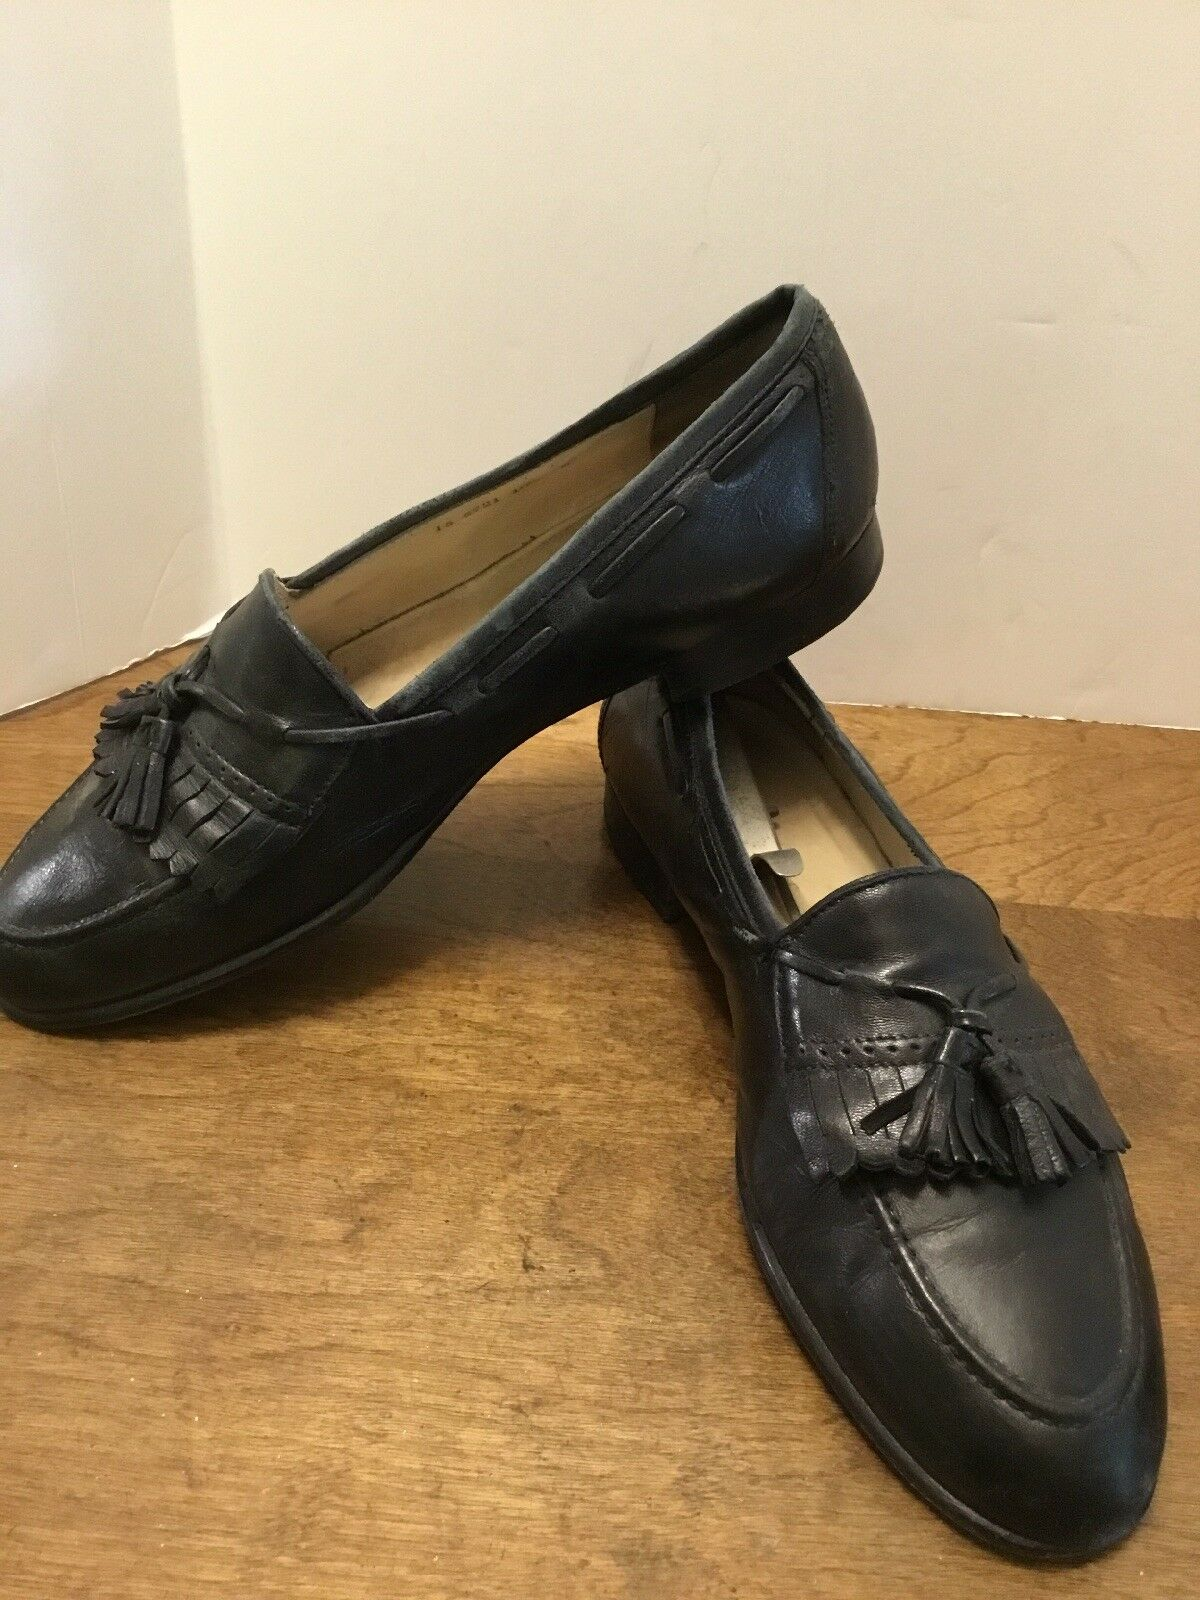 Johnston & Murphy Men's Kiltie Tassel Loafers Black On 10.5M Leather Shoes Slip On Black 0cb9dc